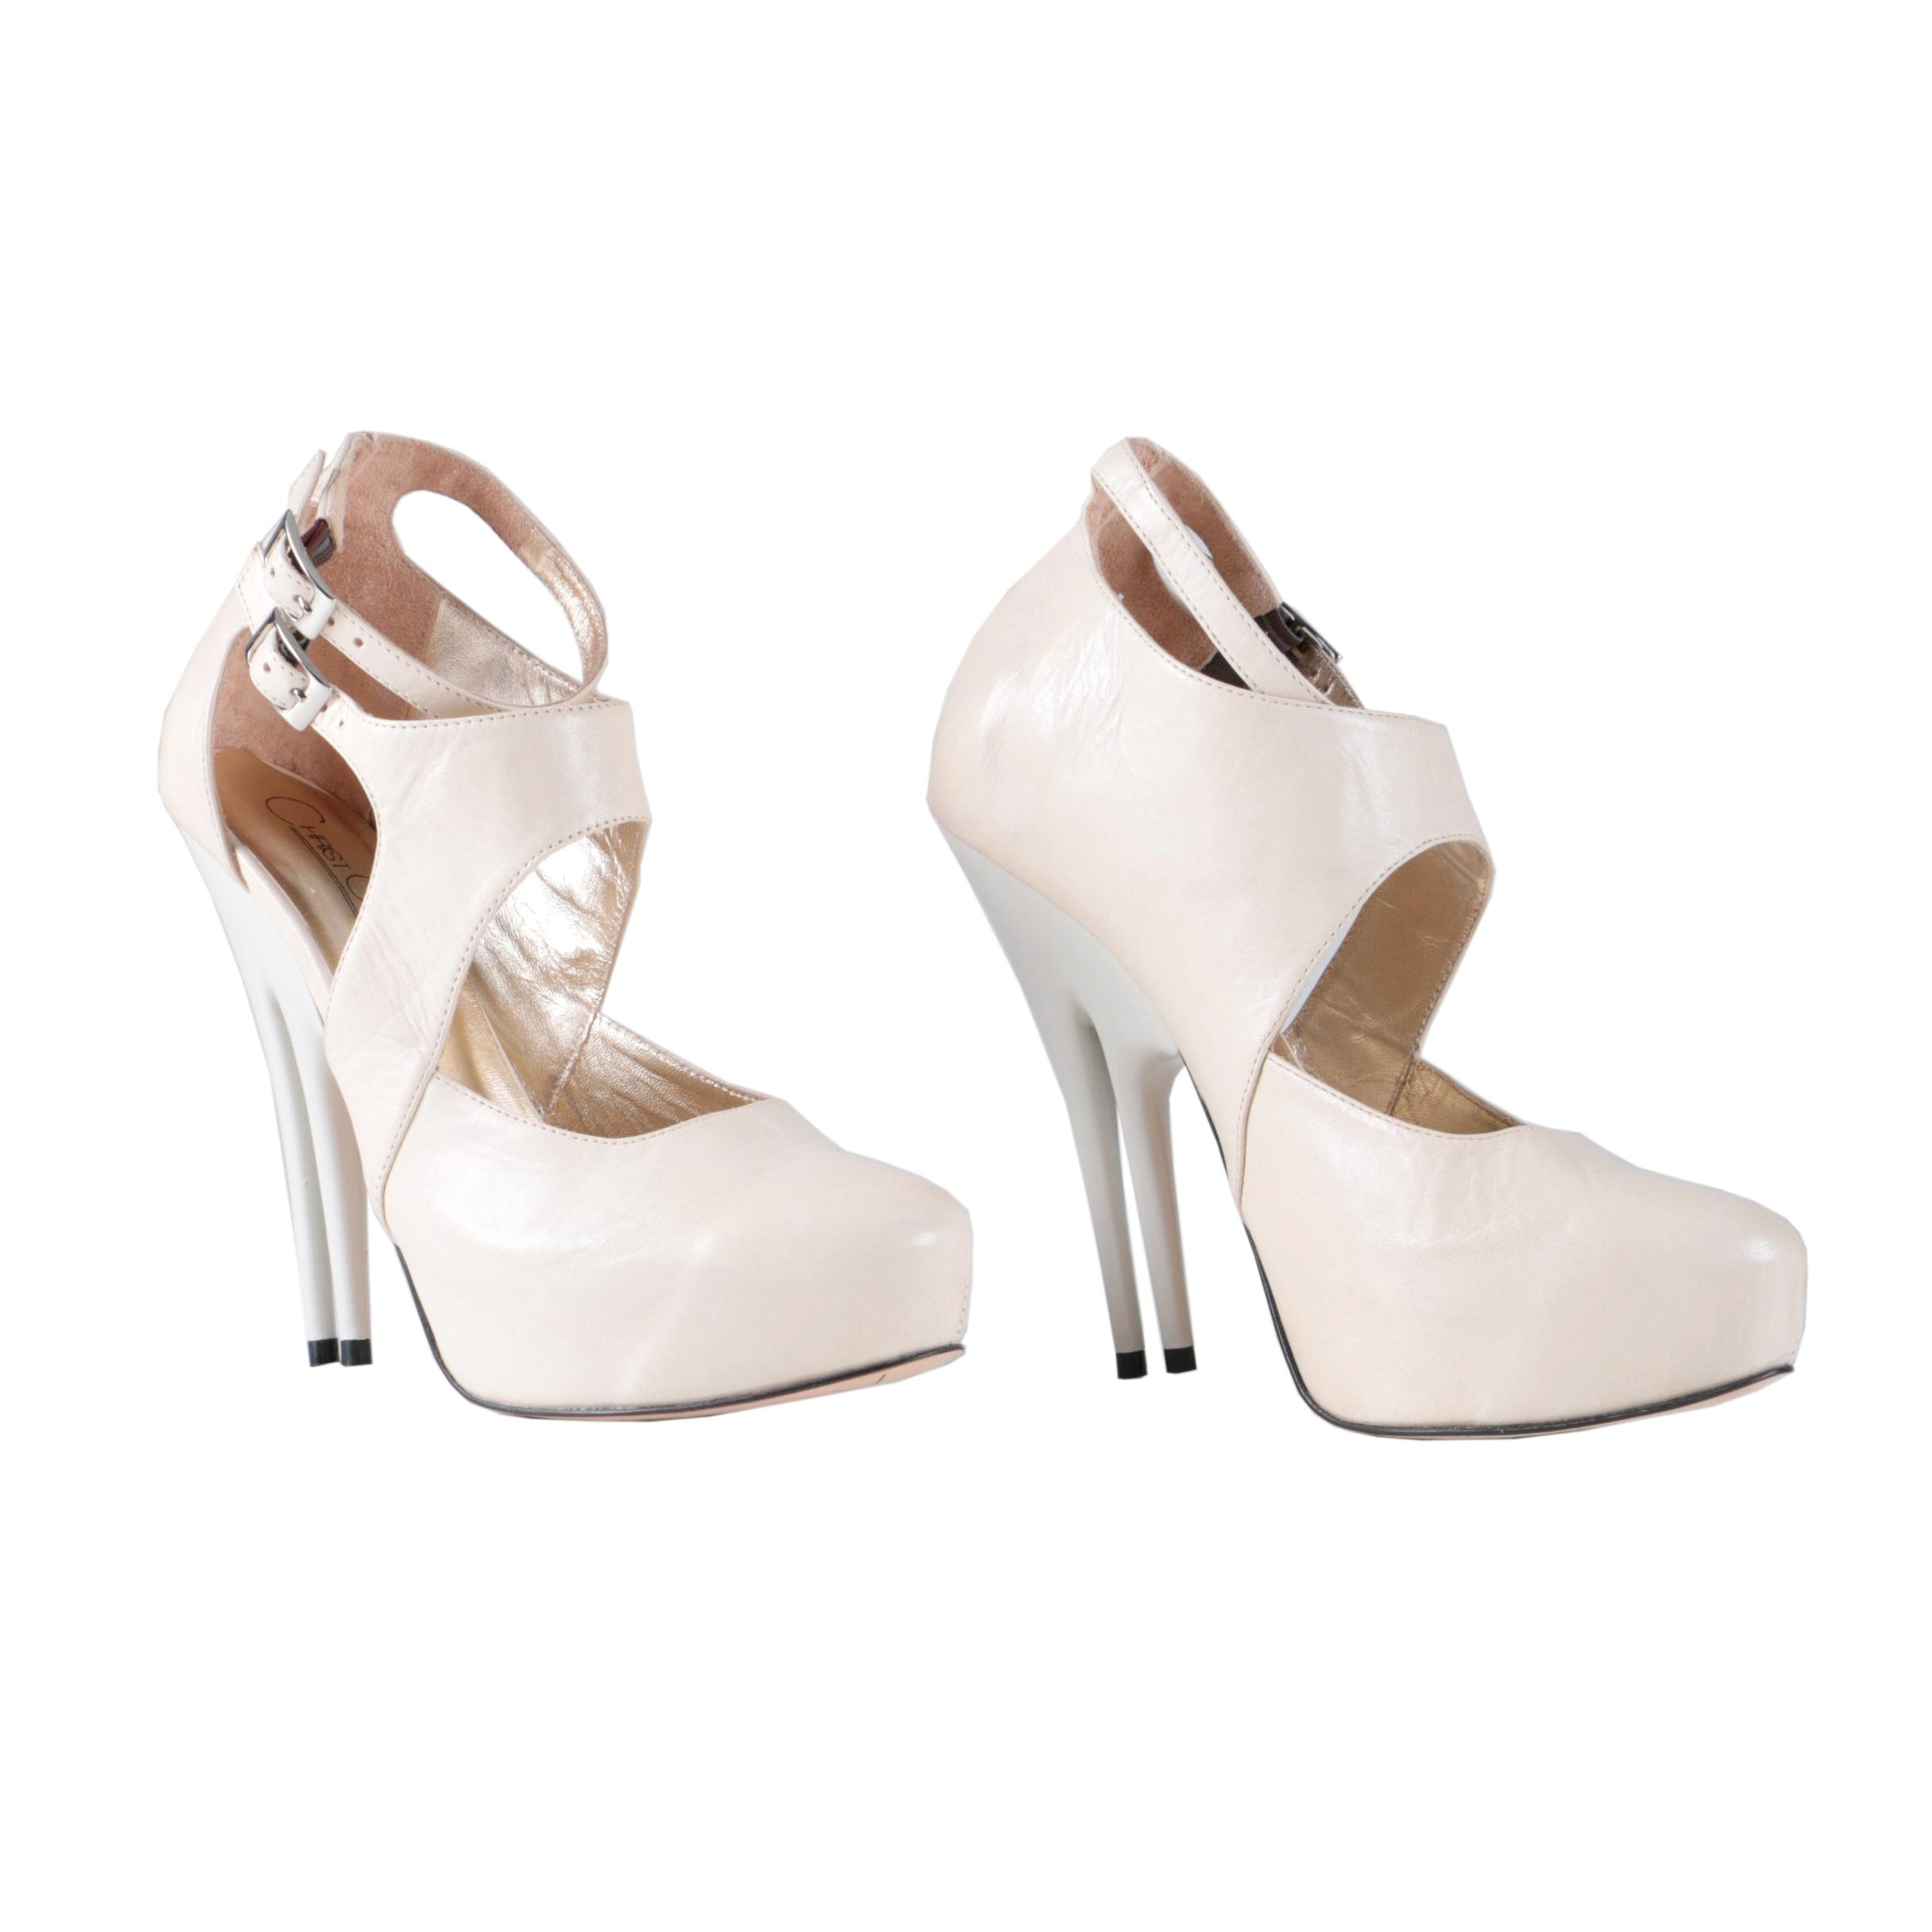 Christopher Coy Collection Prototype Heels in Off-White Leather